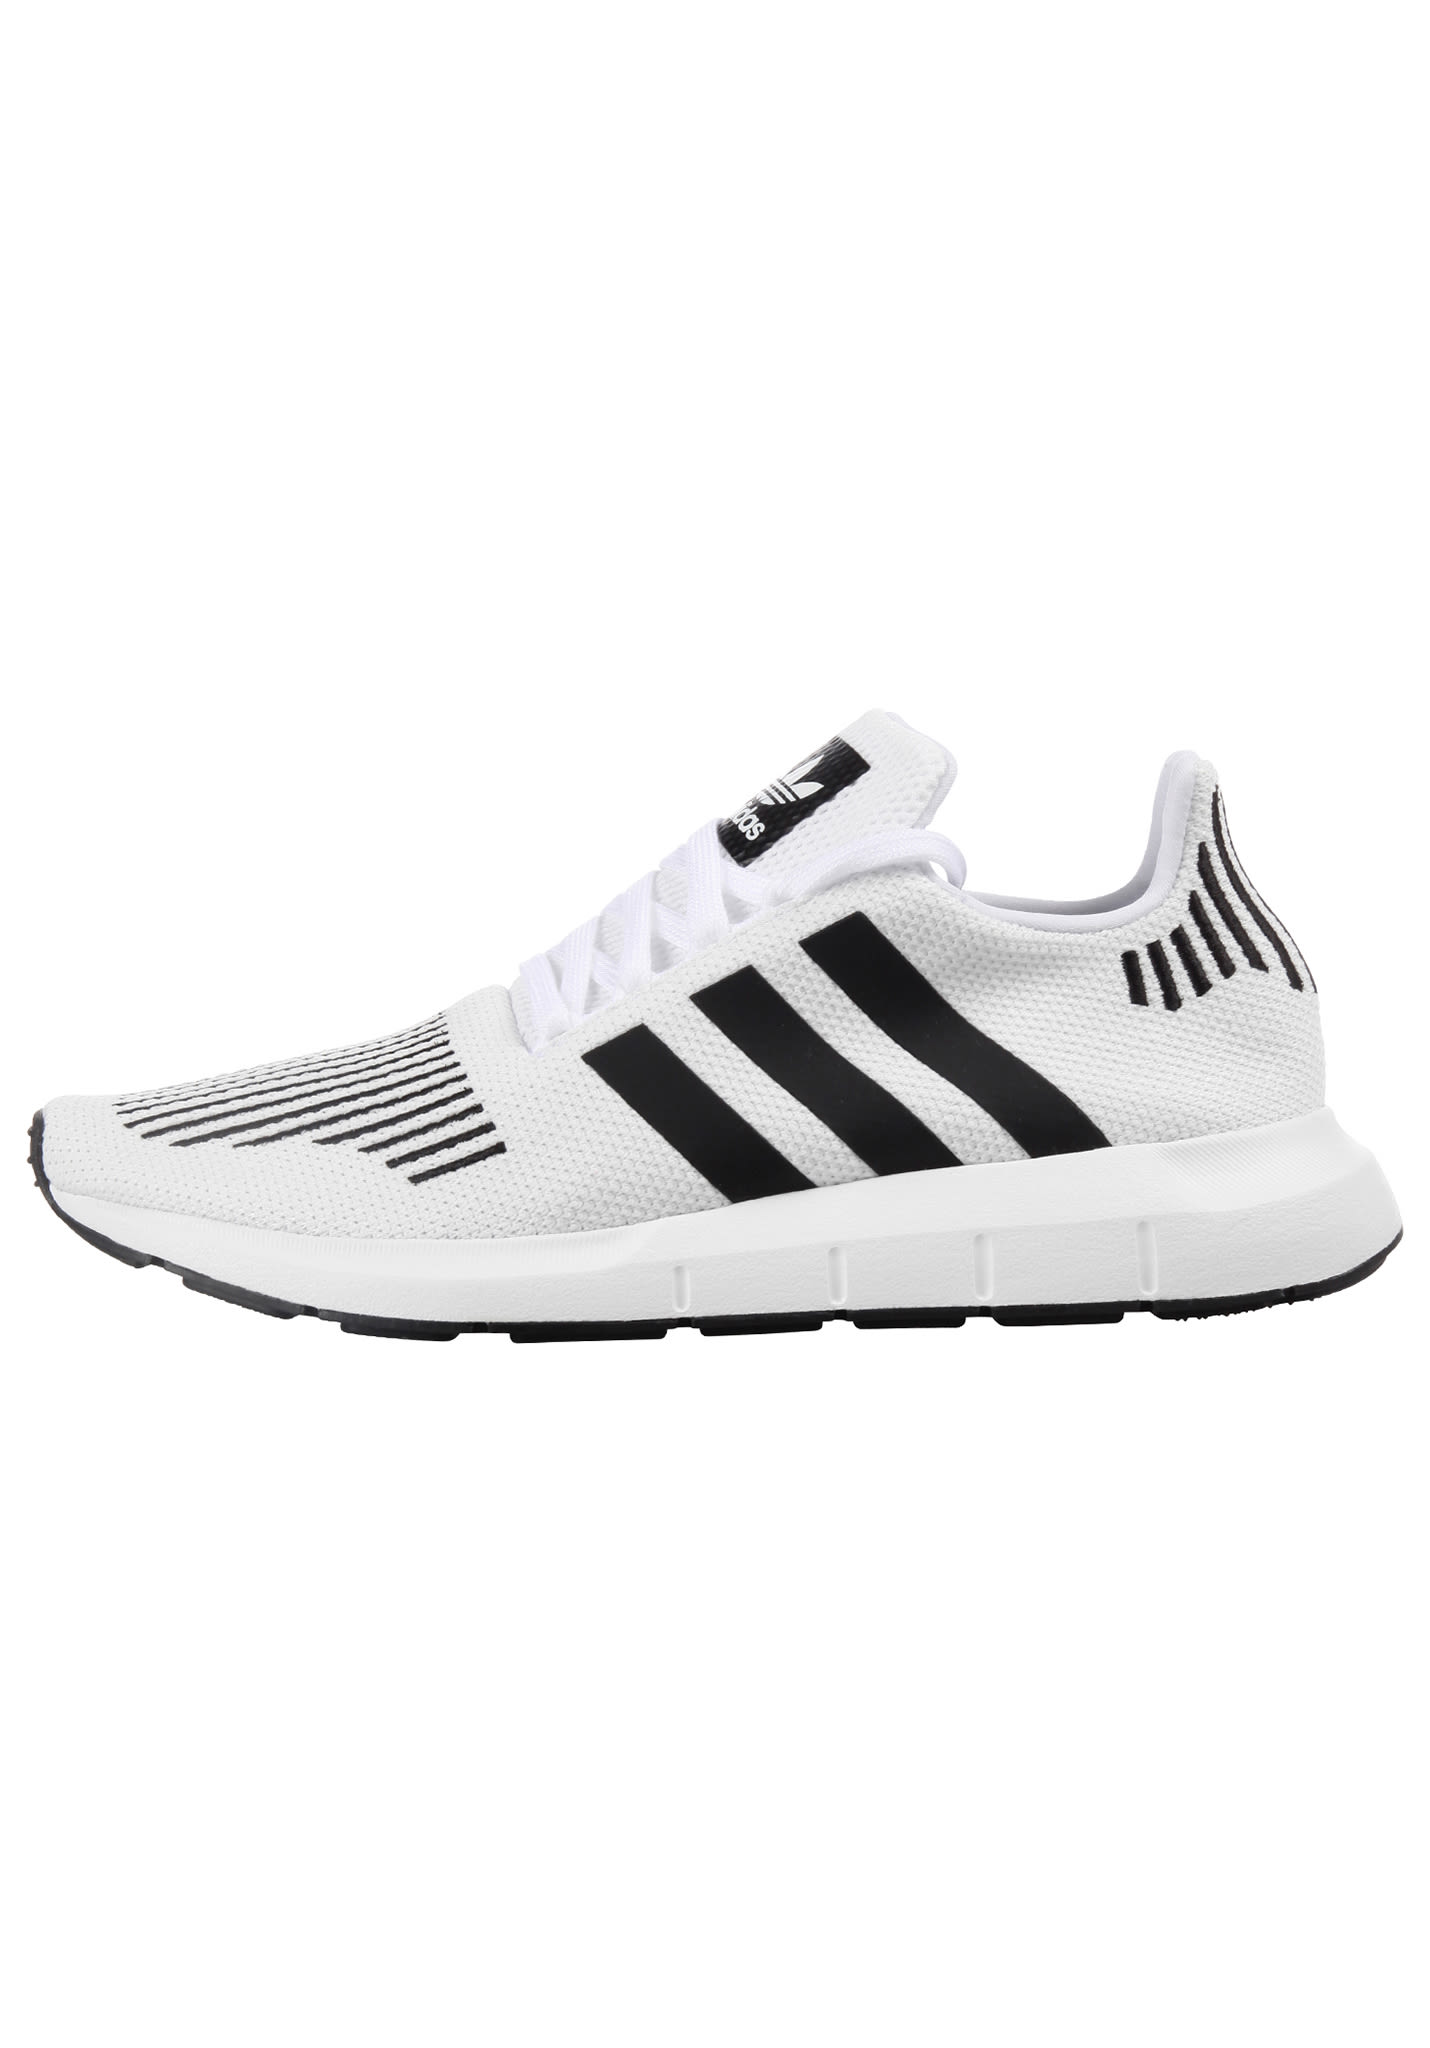 ADIDAS ORIGINALS Swift Run - Sneakers for Men - White - Planet Sports 4bae7f1ec